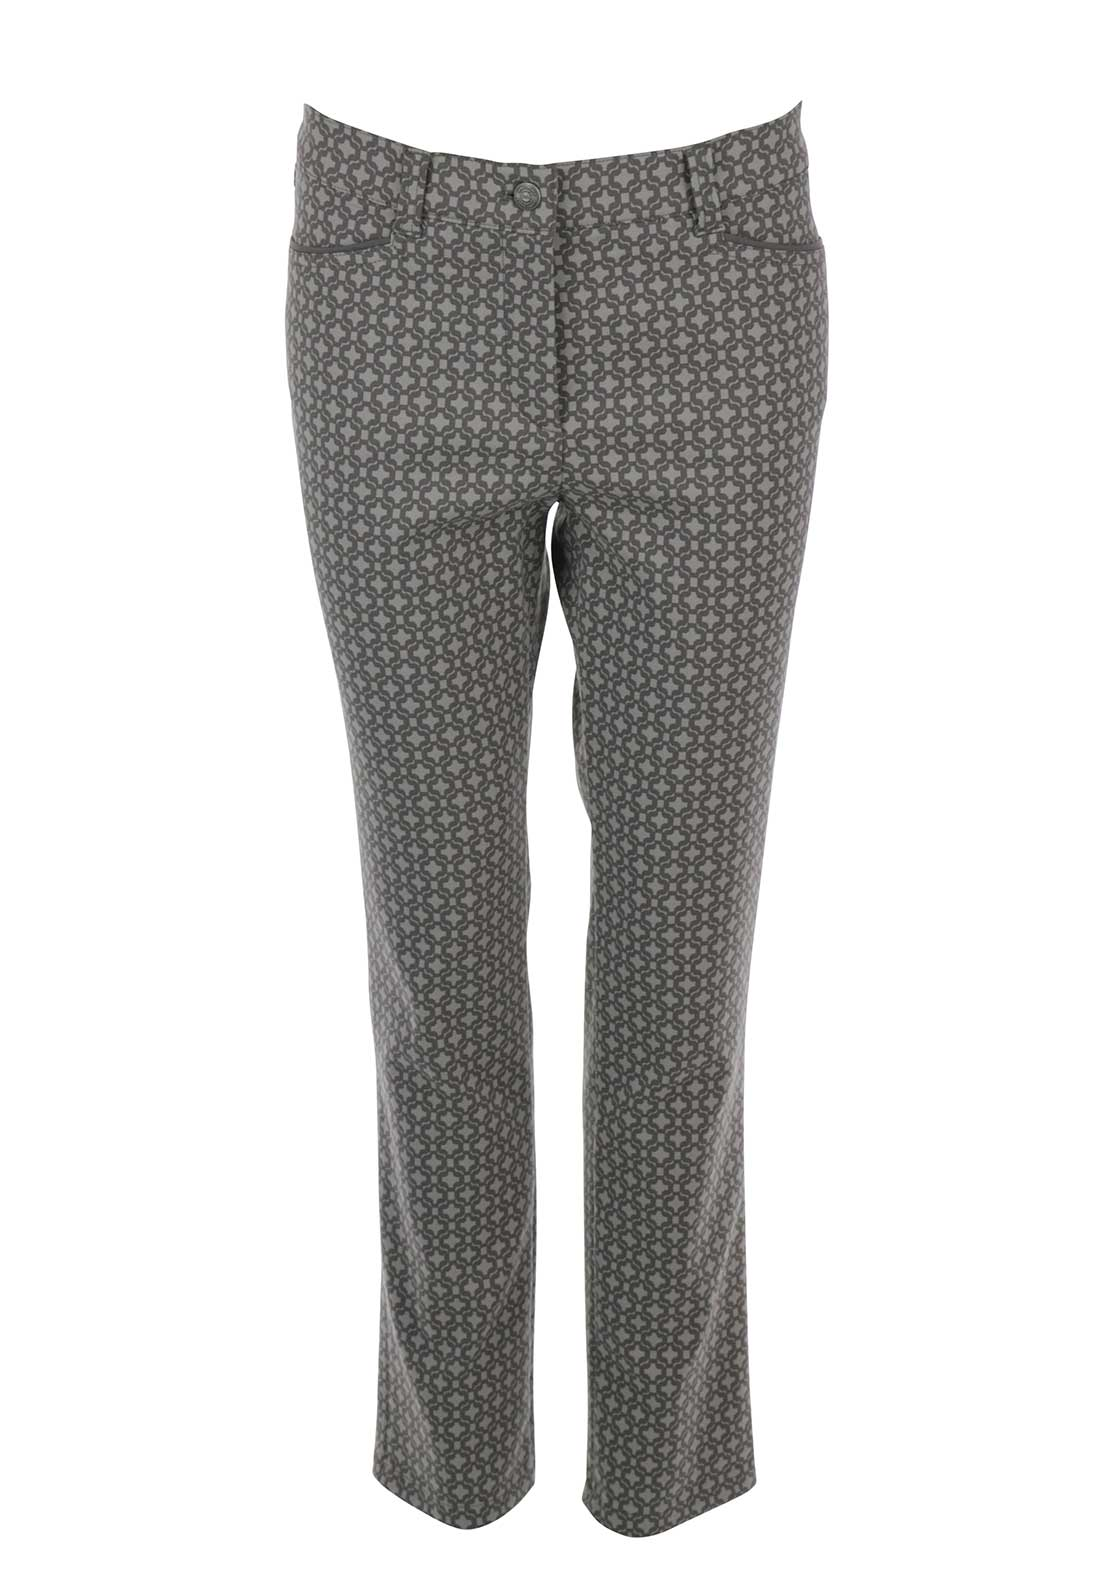 Gerry Weber Romy Geometric Printed Slim Leg Trousers, Regular Length Mocha